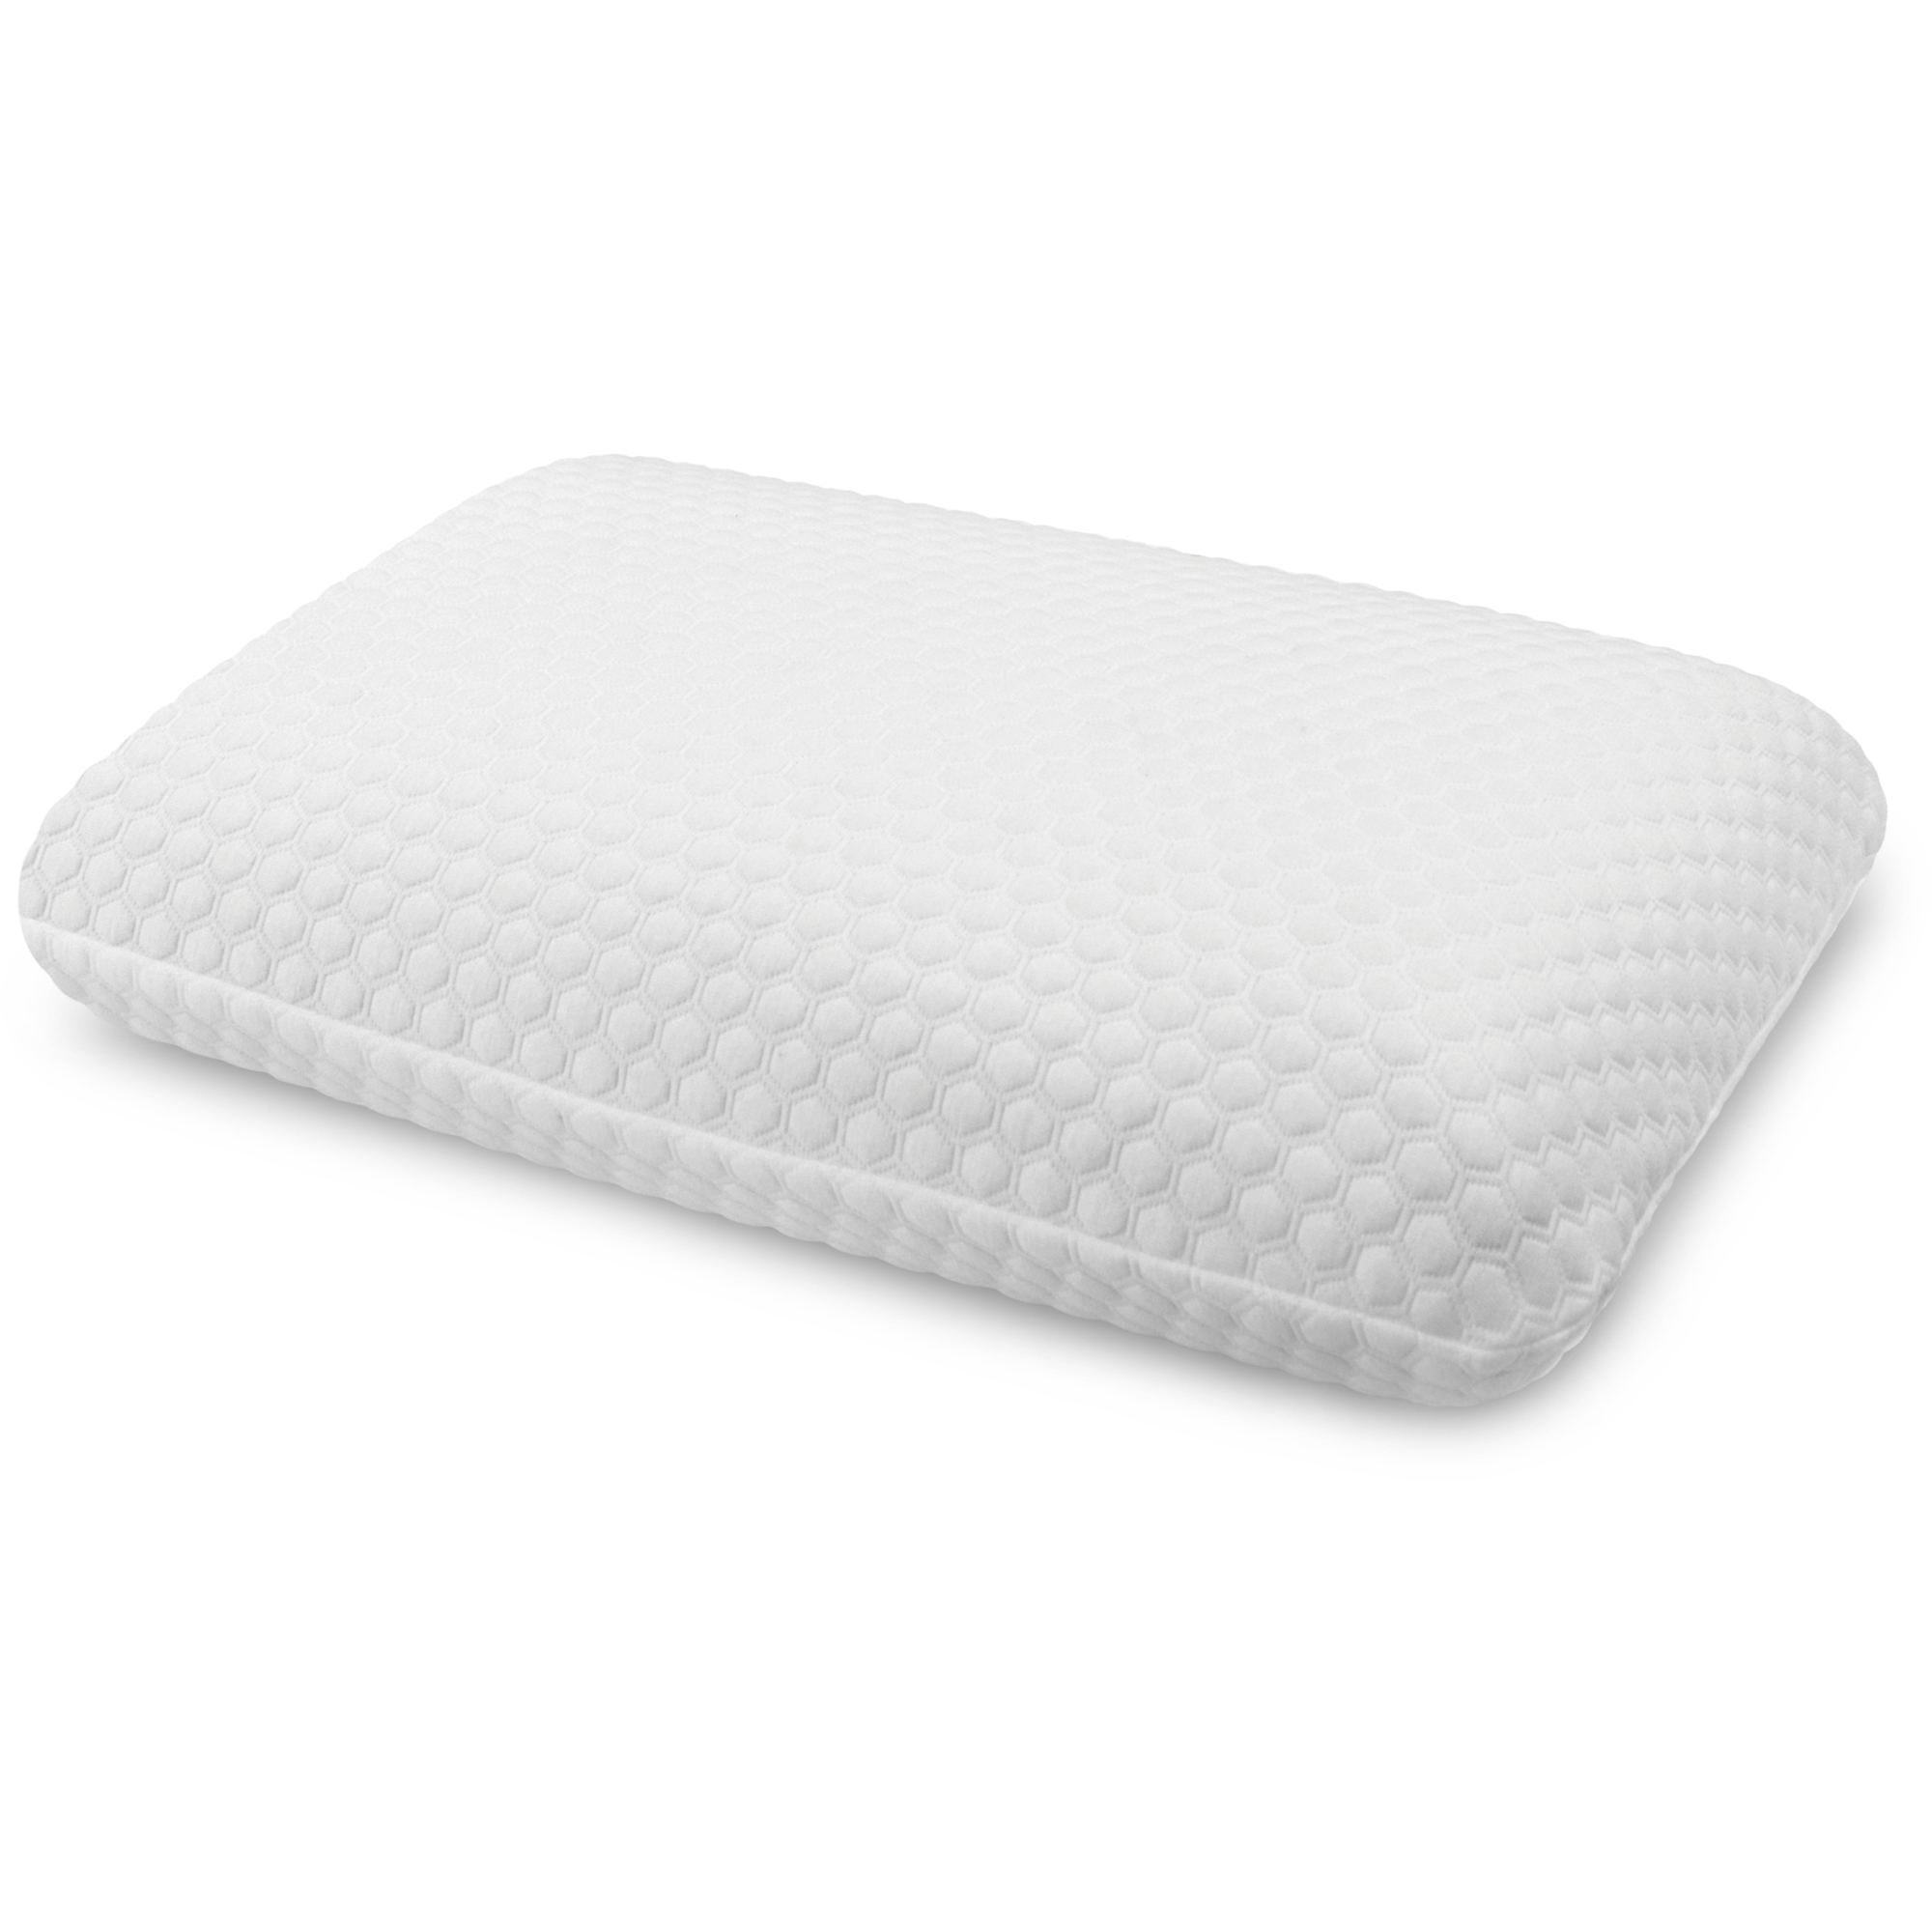 decorative memory willow gel foam x pillows l white king collections cool contour w the pillow bed infused best